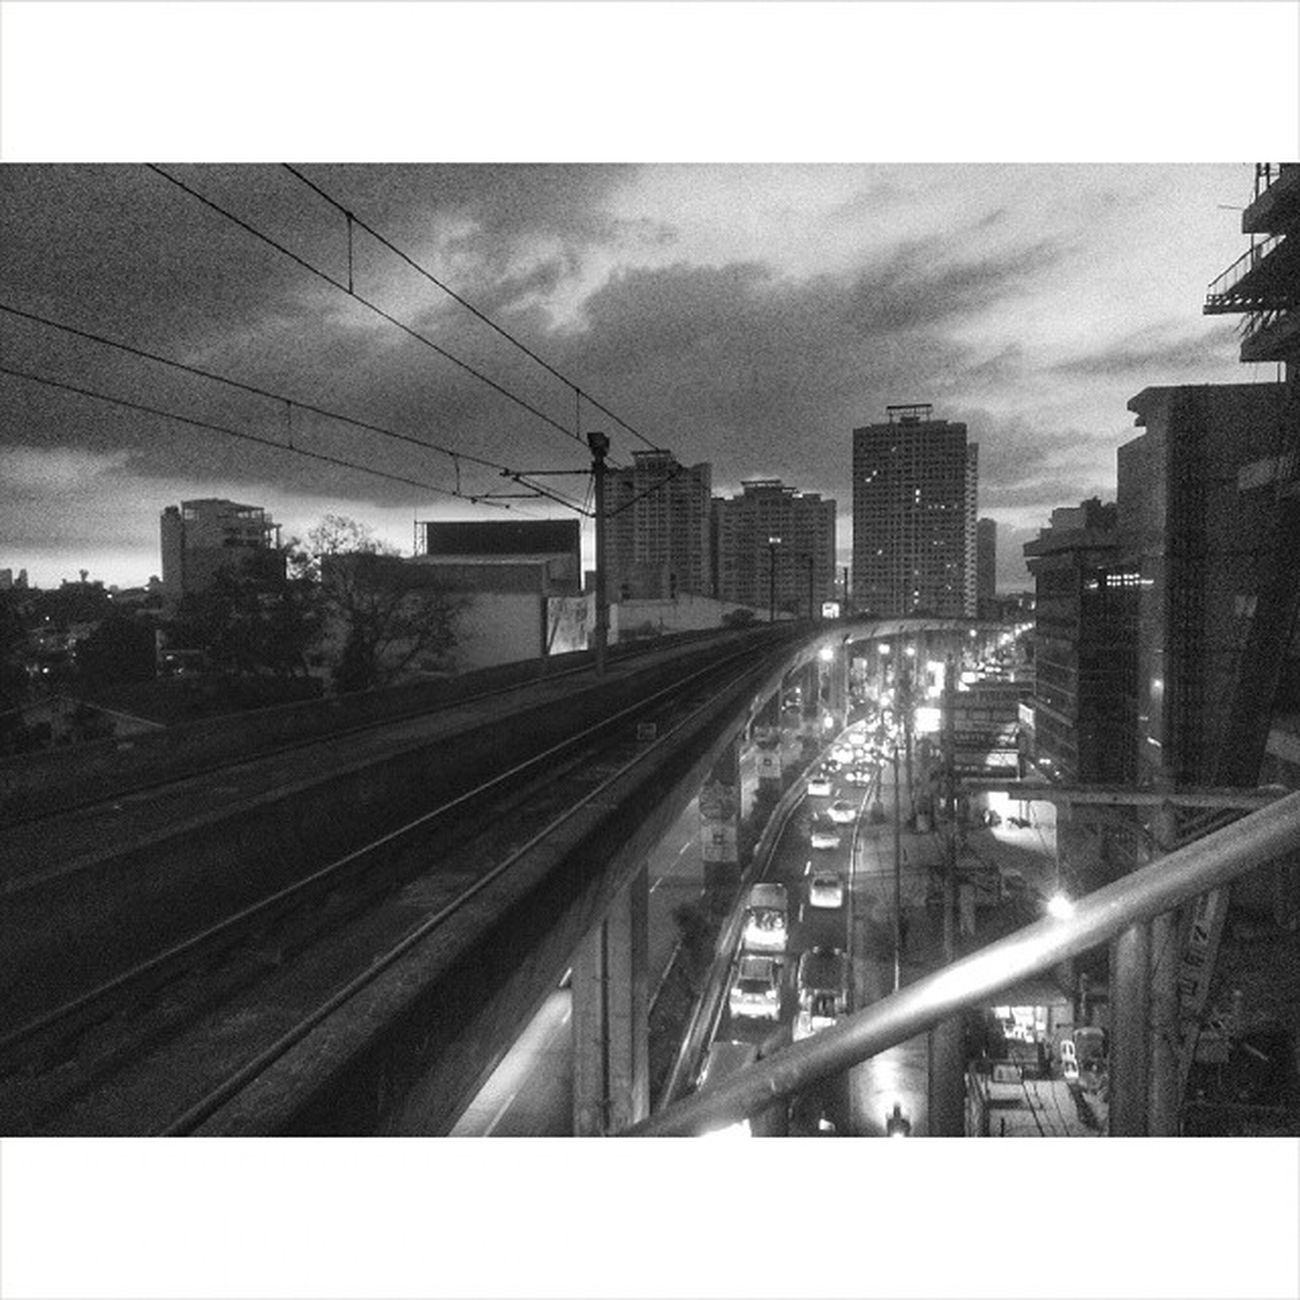 "B&W Challenge Day 5: ""The rail is the longest of all."" Lrt2 Gilmore 5/5 Days are completing. Thank @dupaya08 for nominating me. I don't need to nominate. Thumb up!"